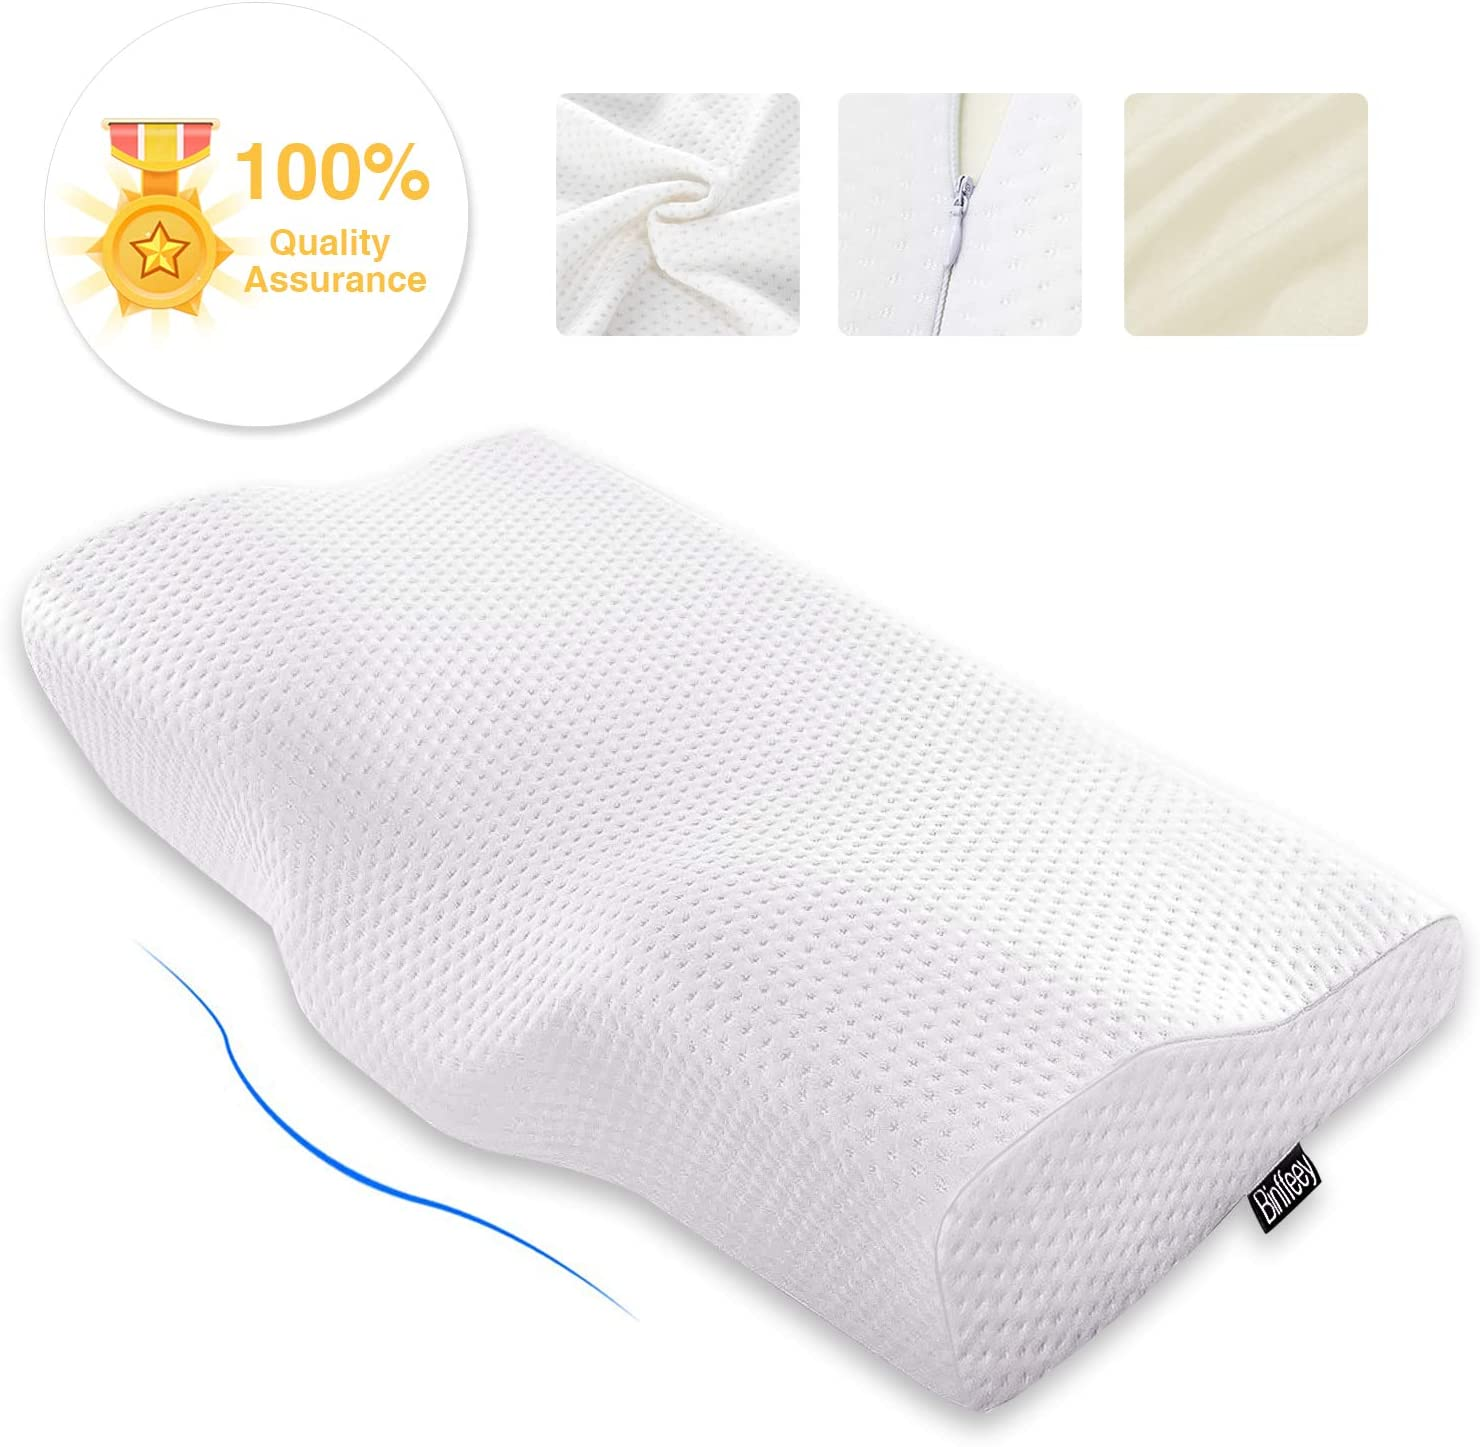 Binffeey Memory Foam Pillow-Memory Foam Pillows for Sleeping Orthopedic Memory Foam Pillow for Neck Pain,Cervical Contour Pillow,Neck Support Bed Pillow with Washable Pillowcase